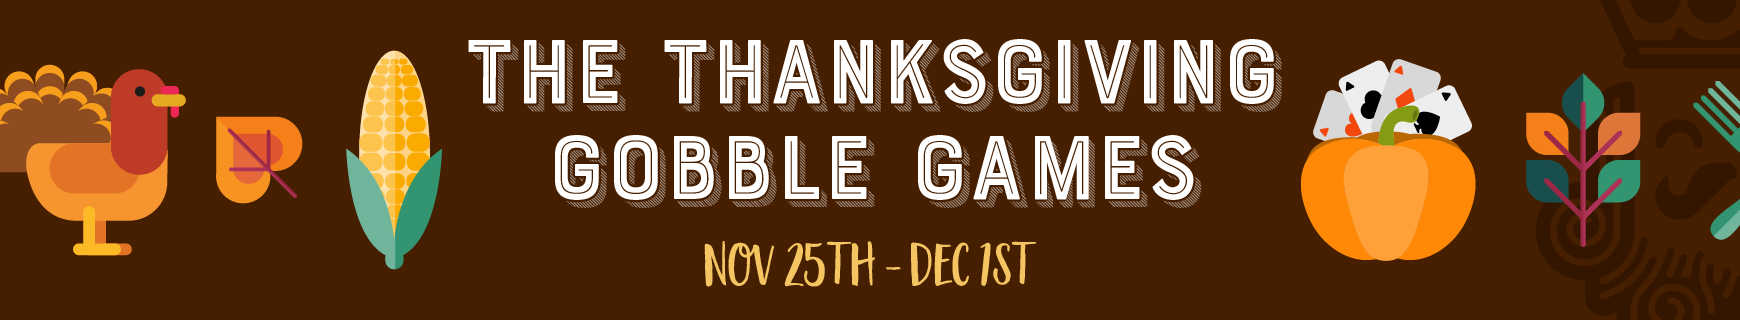 The thanksgiving gobble games %28870 x 160%29 2x %282%29